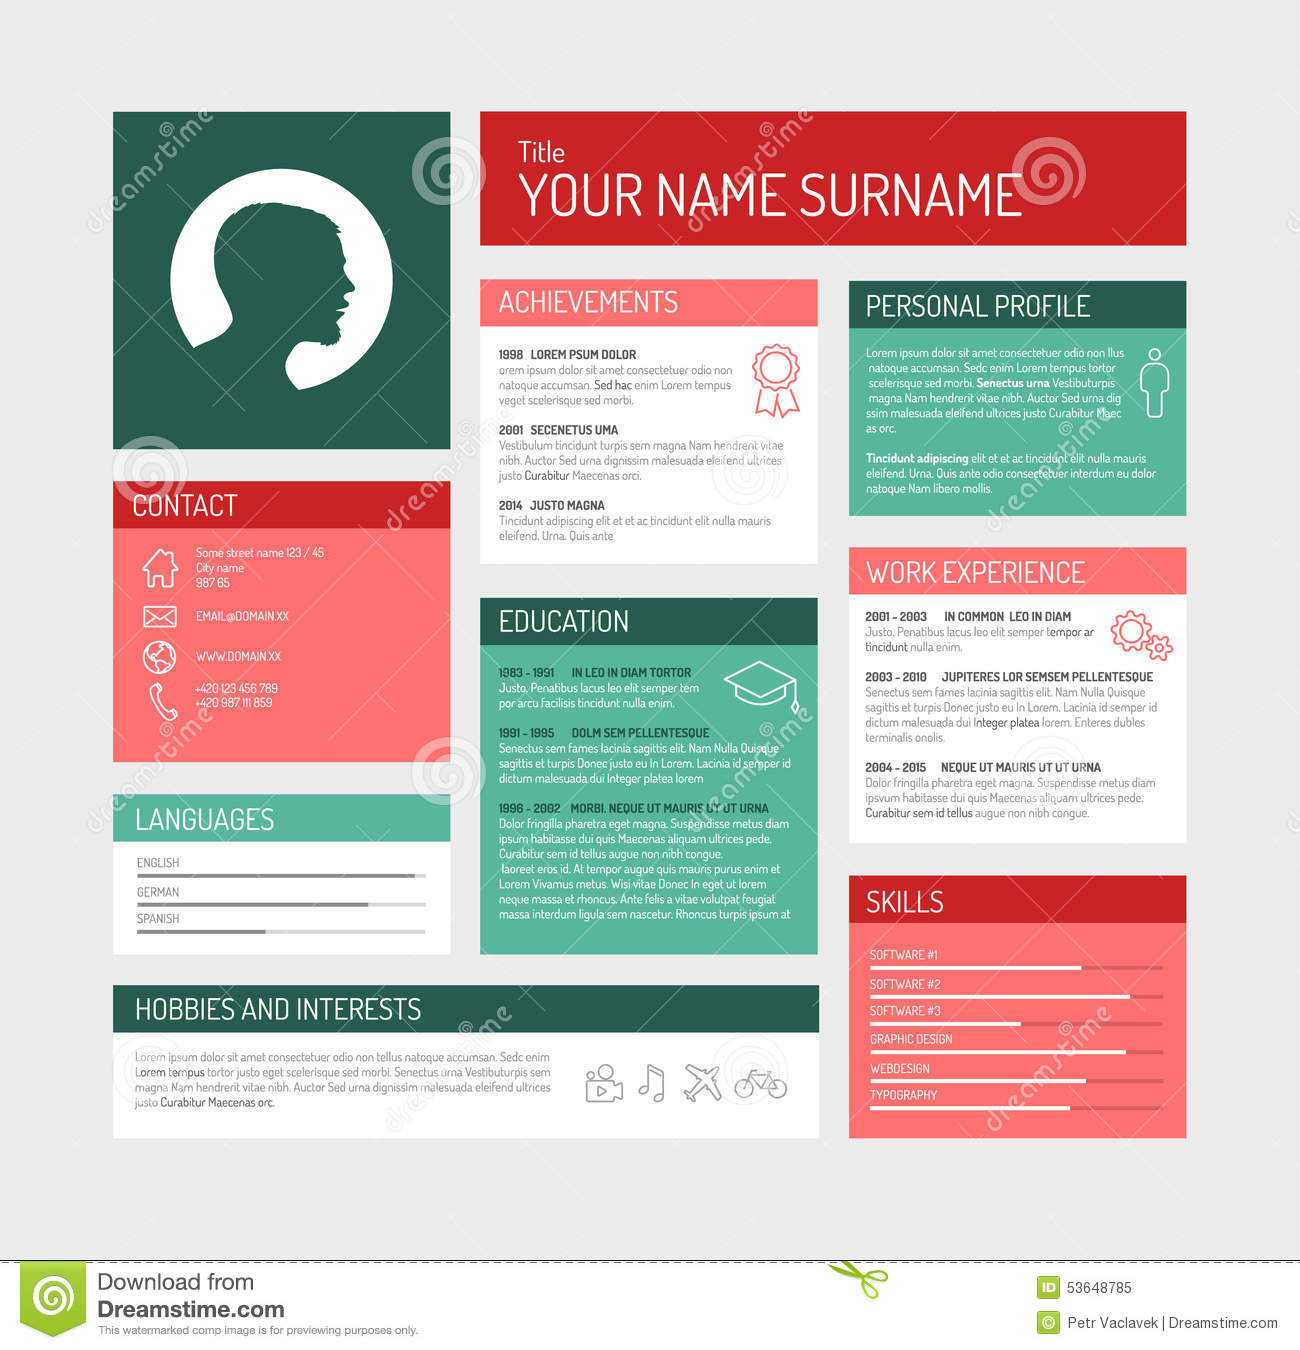 amazing tableau developer resume images simple resume office